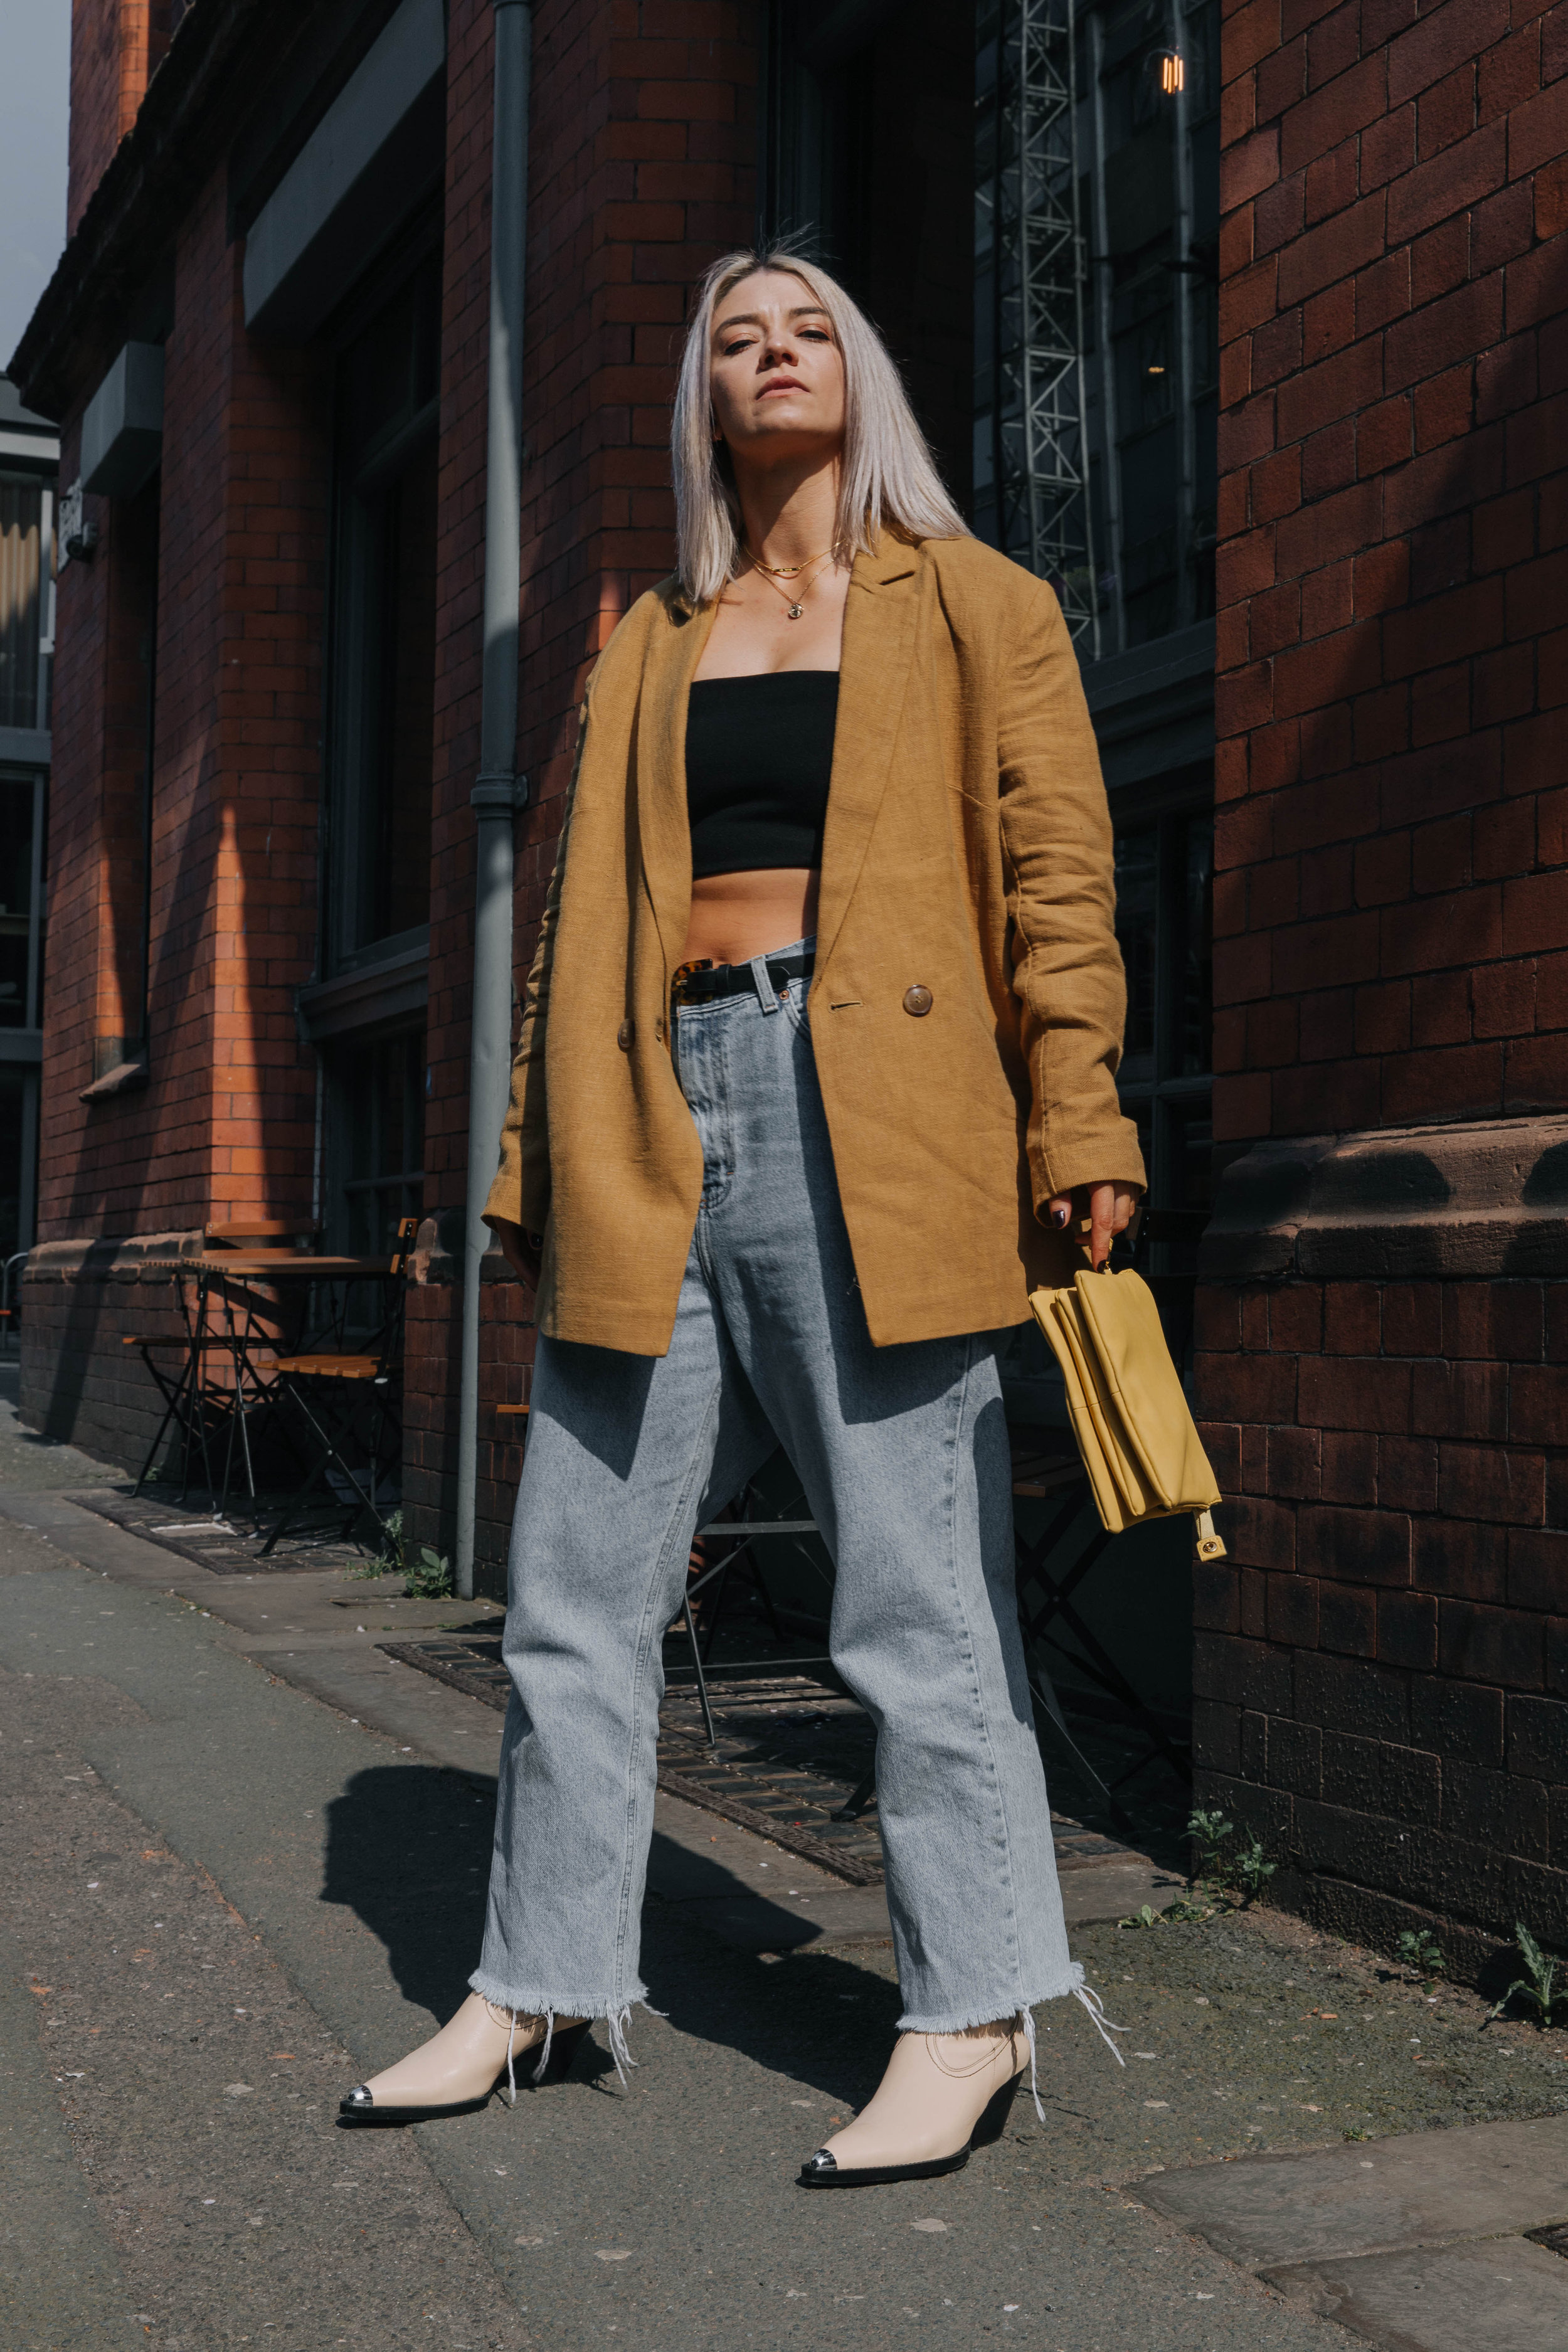 CROP TOP AND VINTAGE JEANS, WITH A BLAZER AND SS19 COWBOYS IN NORTHERN QUARTER, MANCHESTER 1